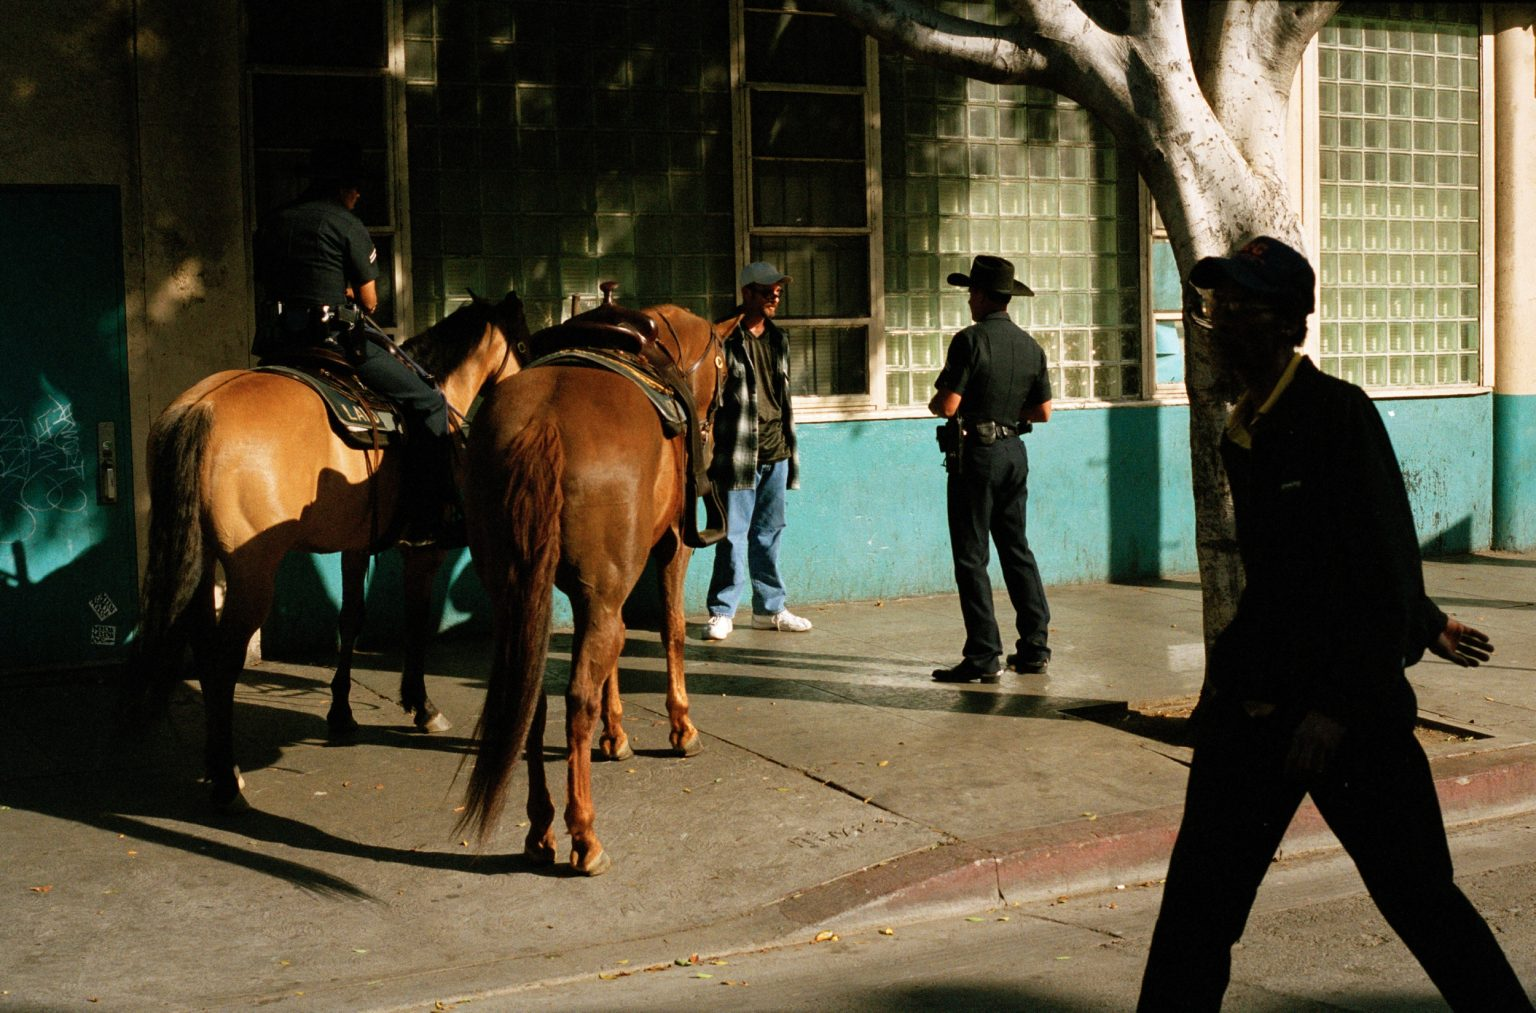 Suspect of drug possession being searched by LAPD, San Pedro street. Skid Row, Los Angeles, United States 2004-2005